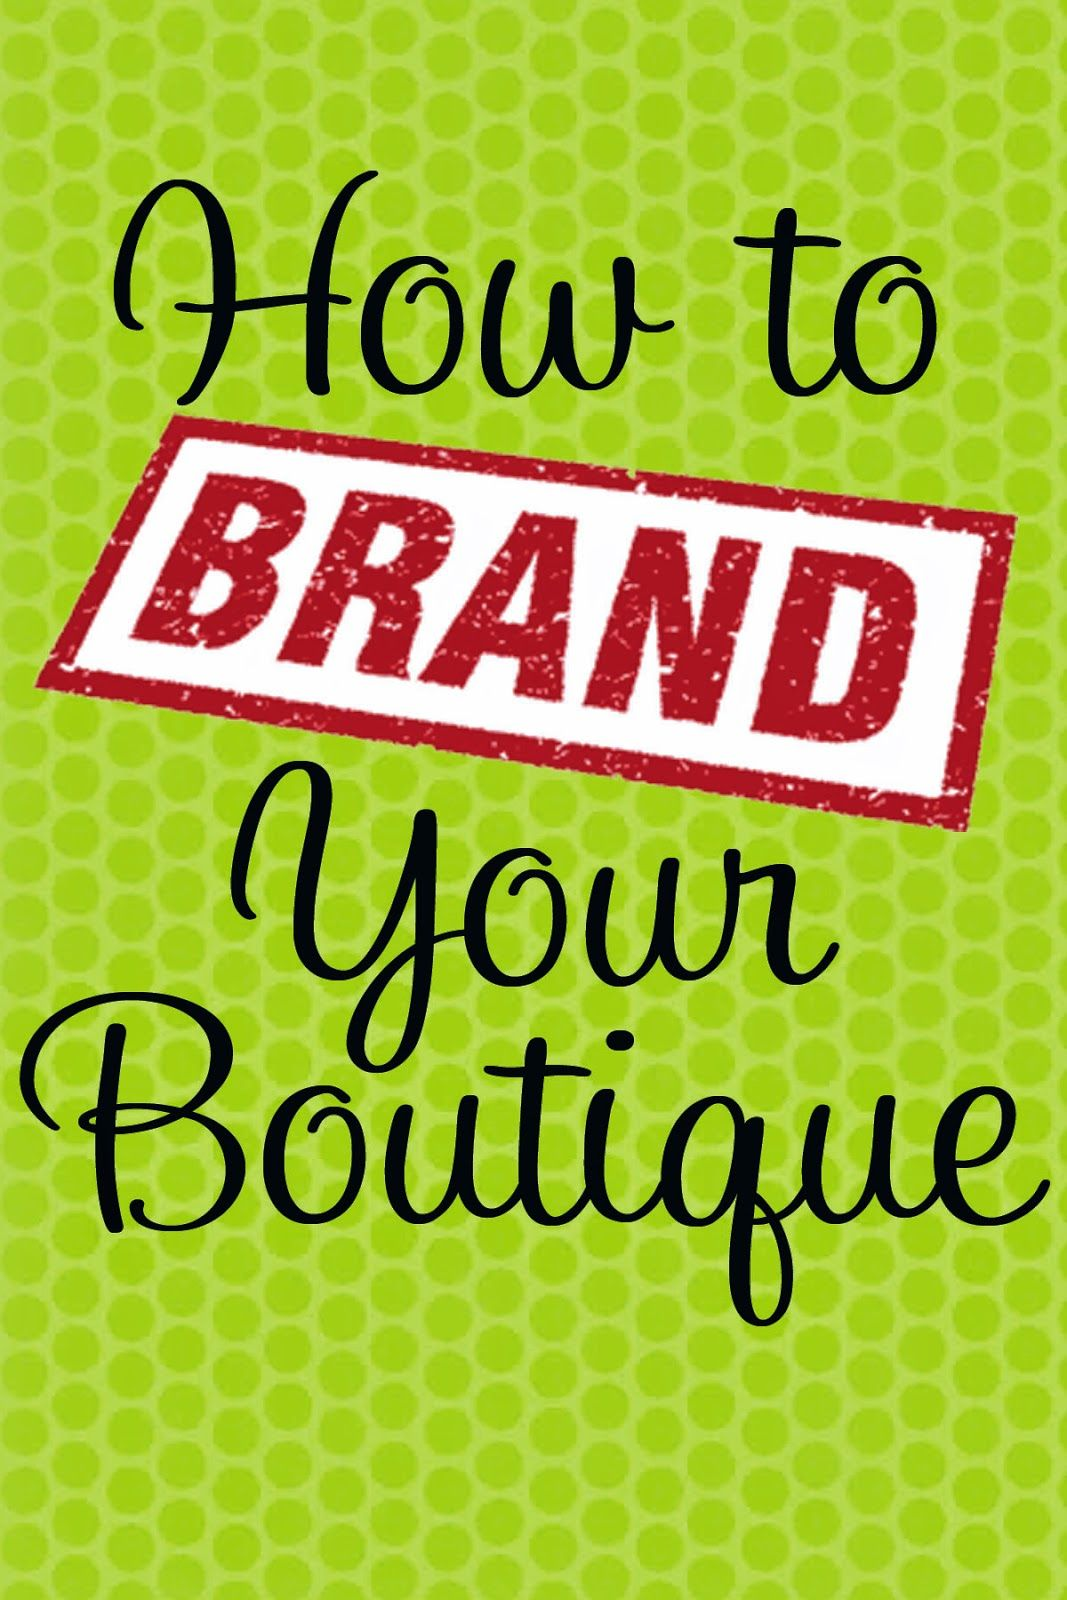 Boutique Basics Branding Your Business Boutique Business And